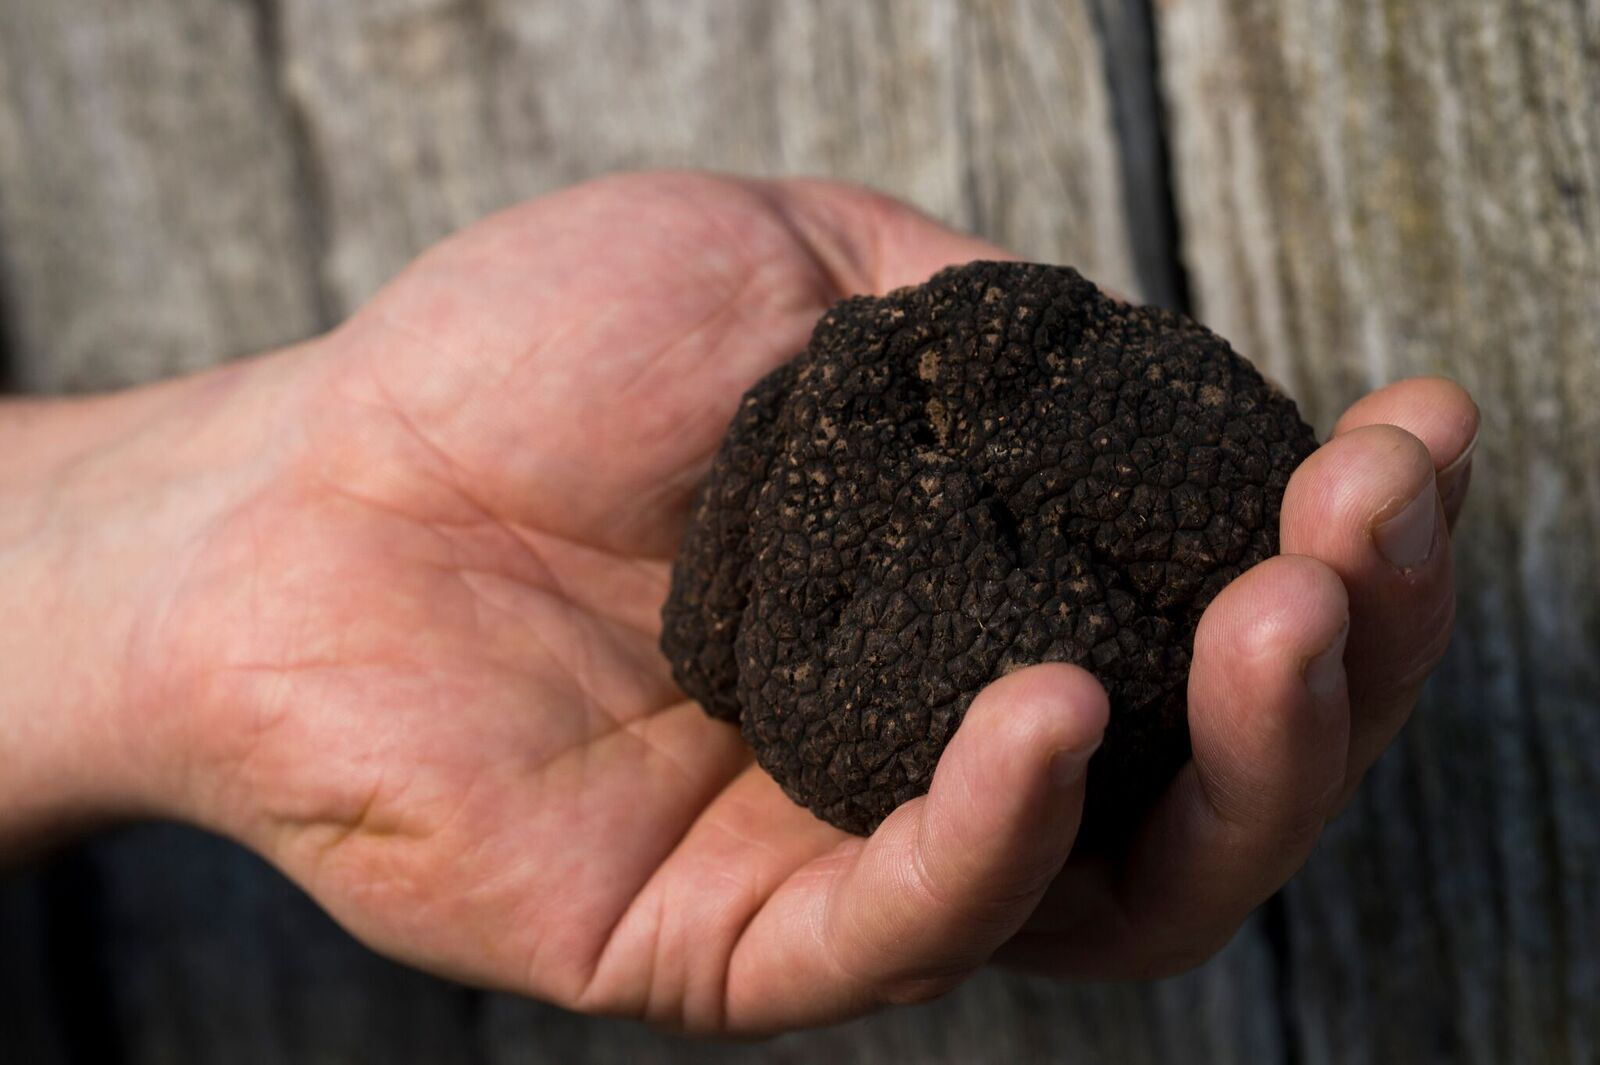 A whole black winter truffle in the palm of a man's hand.